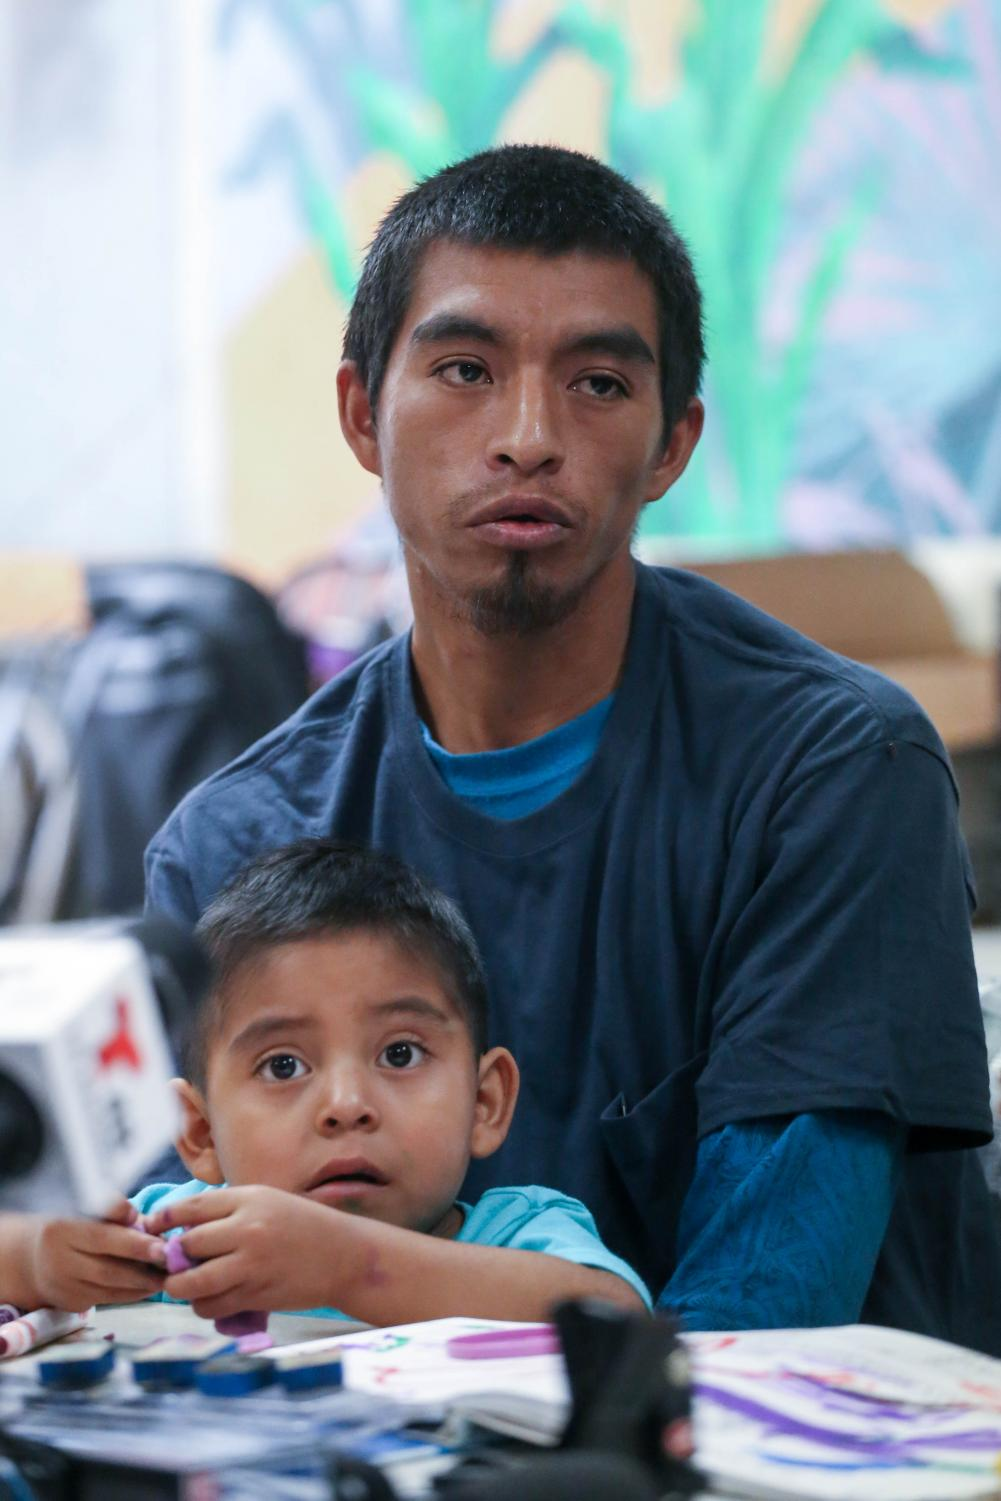 Pablo+speaks+about+how+he+felt+while+being+separated+from+is+son+for+three+months.+